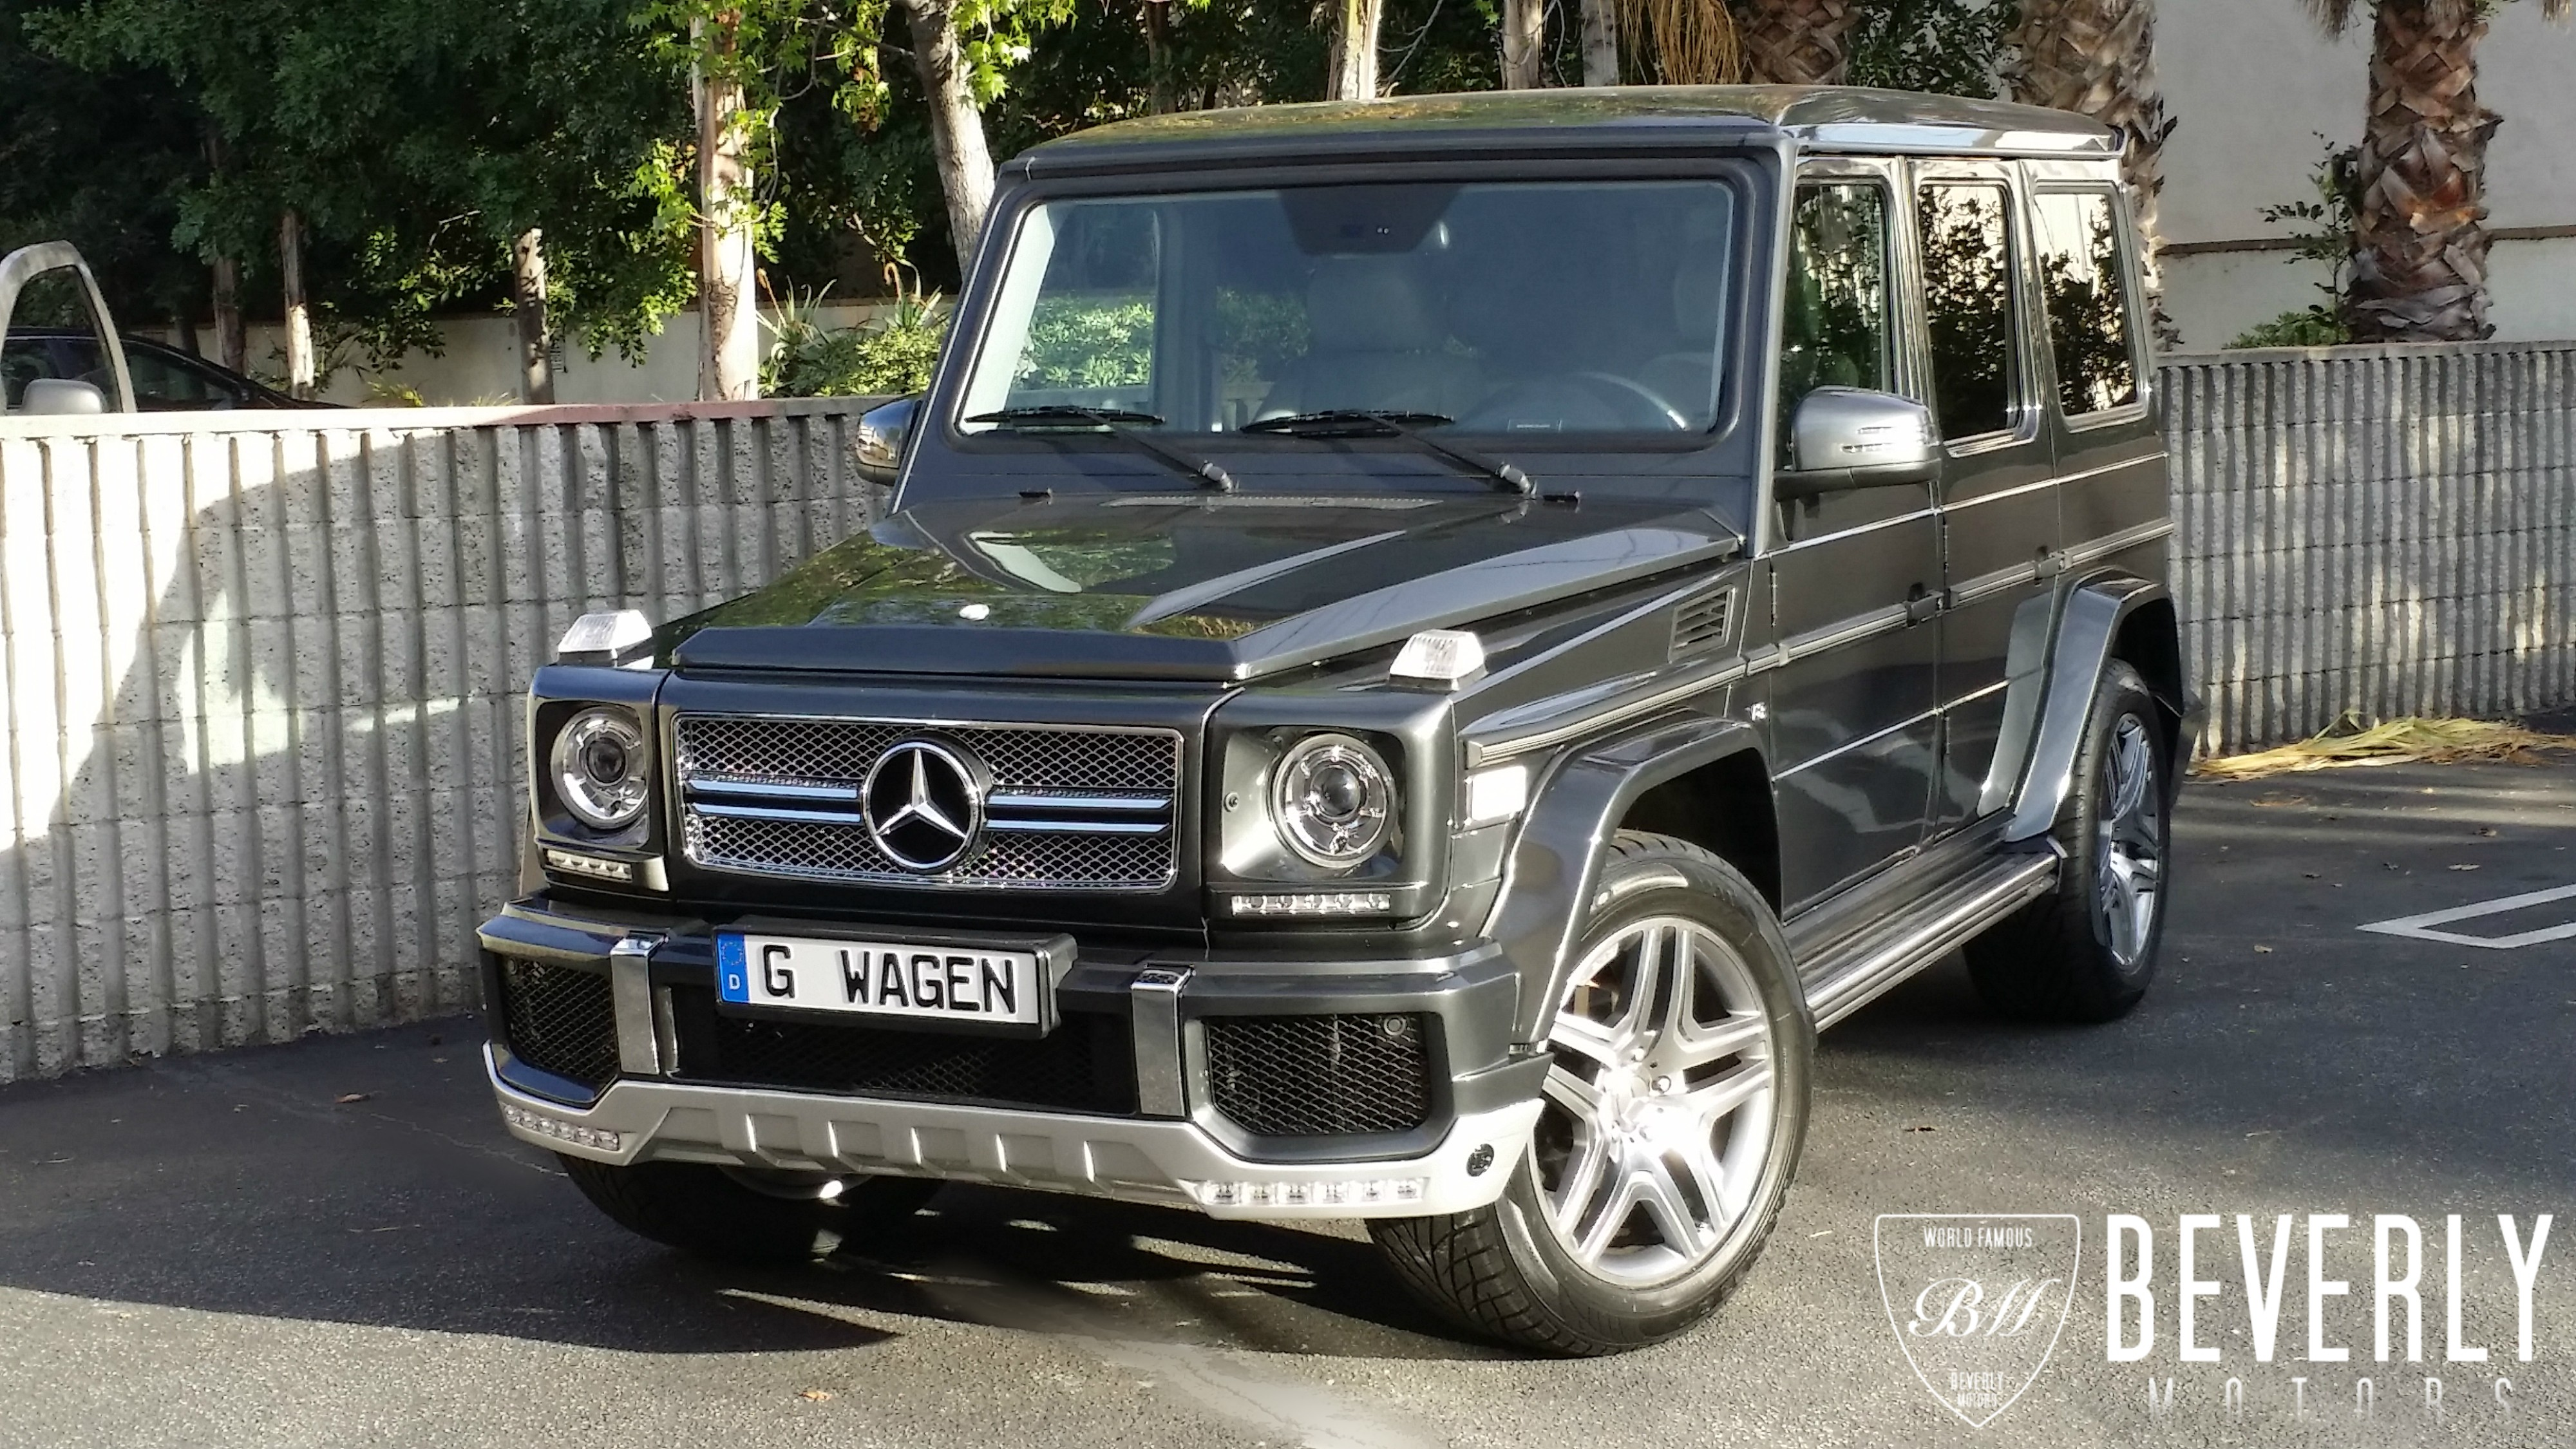 Mercedes G Wagon Lease >> Beverly Motors Inc : Glendale Auto Leasing and Sales. New Car Lease Specials Burbank, Beverly ...